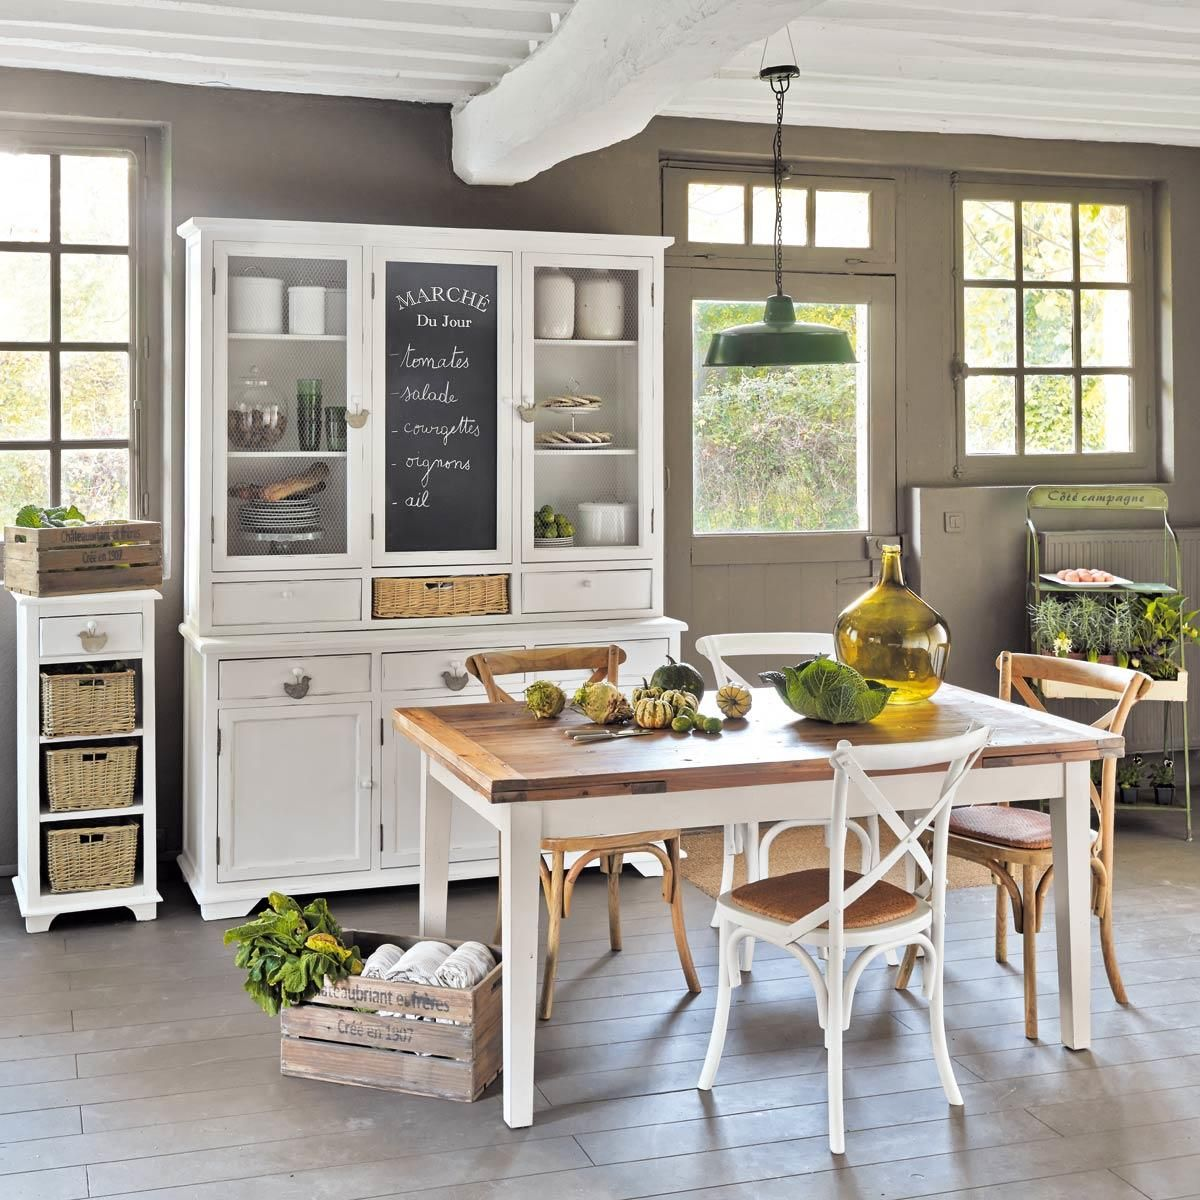 Maisons Du Monde Devoluciones White China Cabinet In 2019 Comedores Кухня Интерьер Дизайн